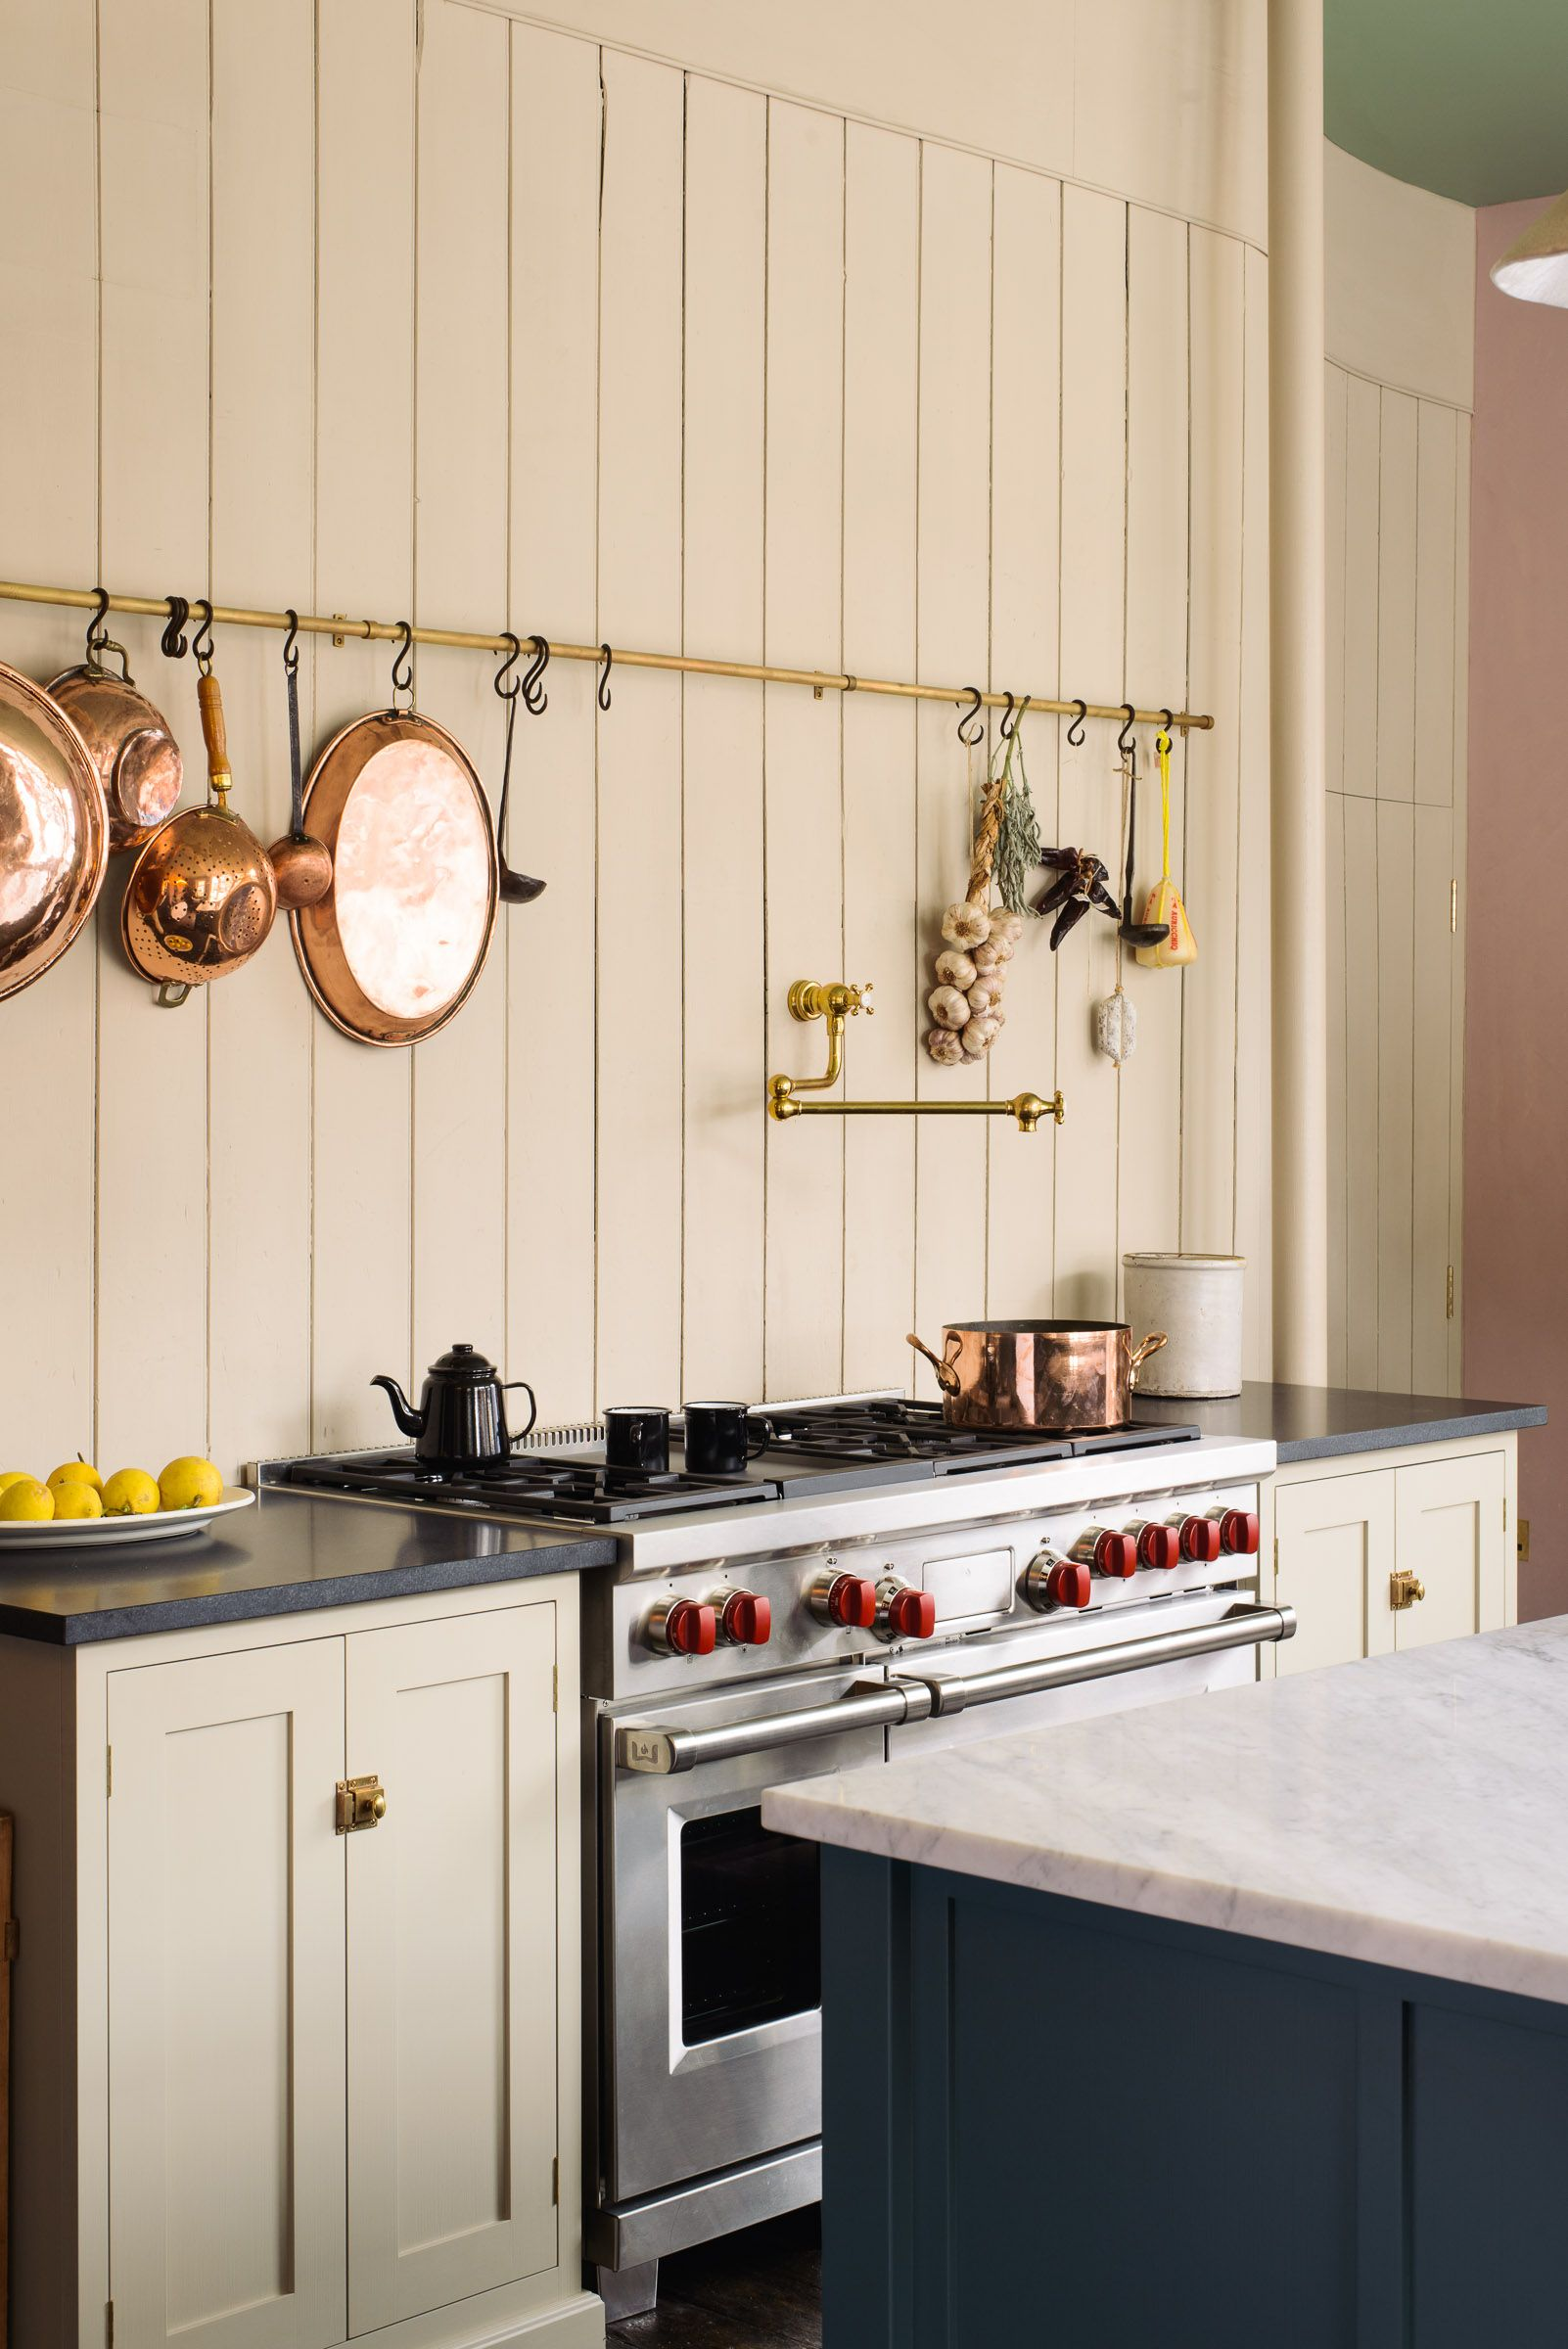 A brass hanging rail with copper pans, a deVOL pot filler and ...